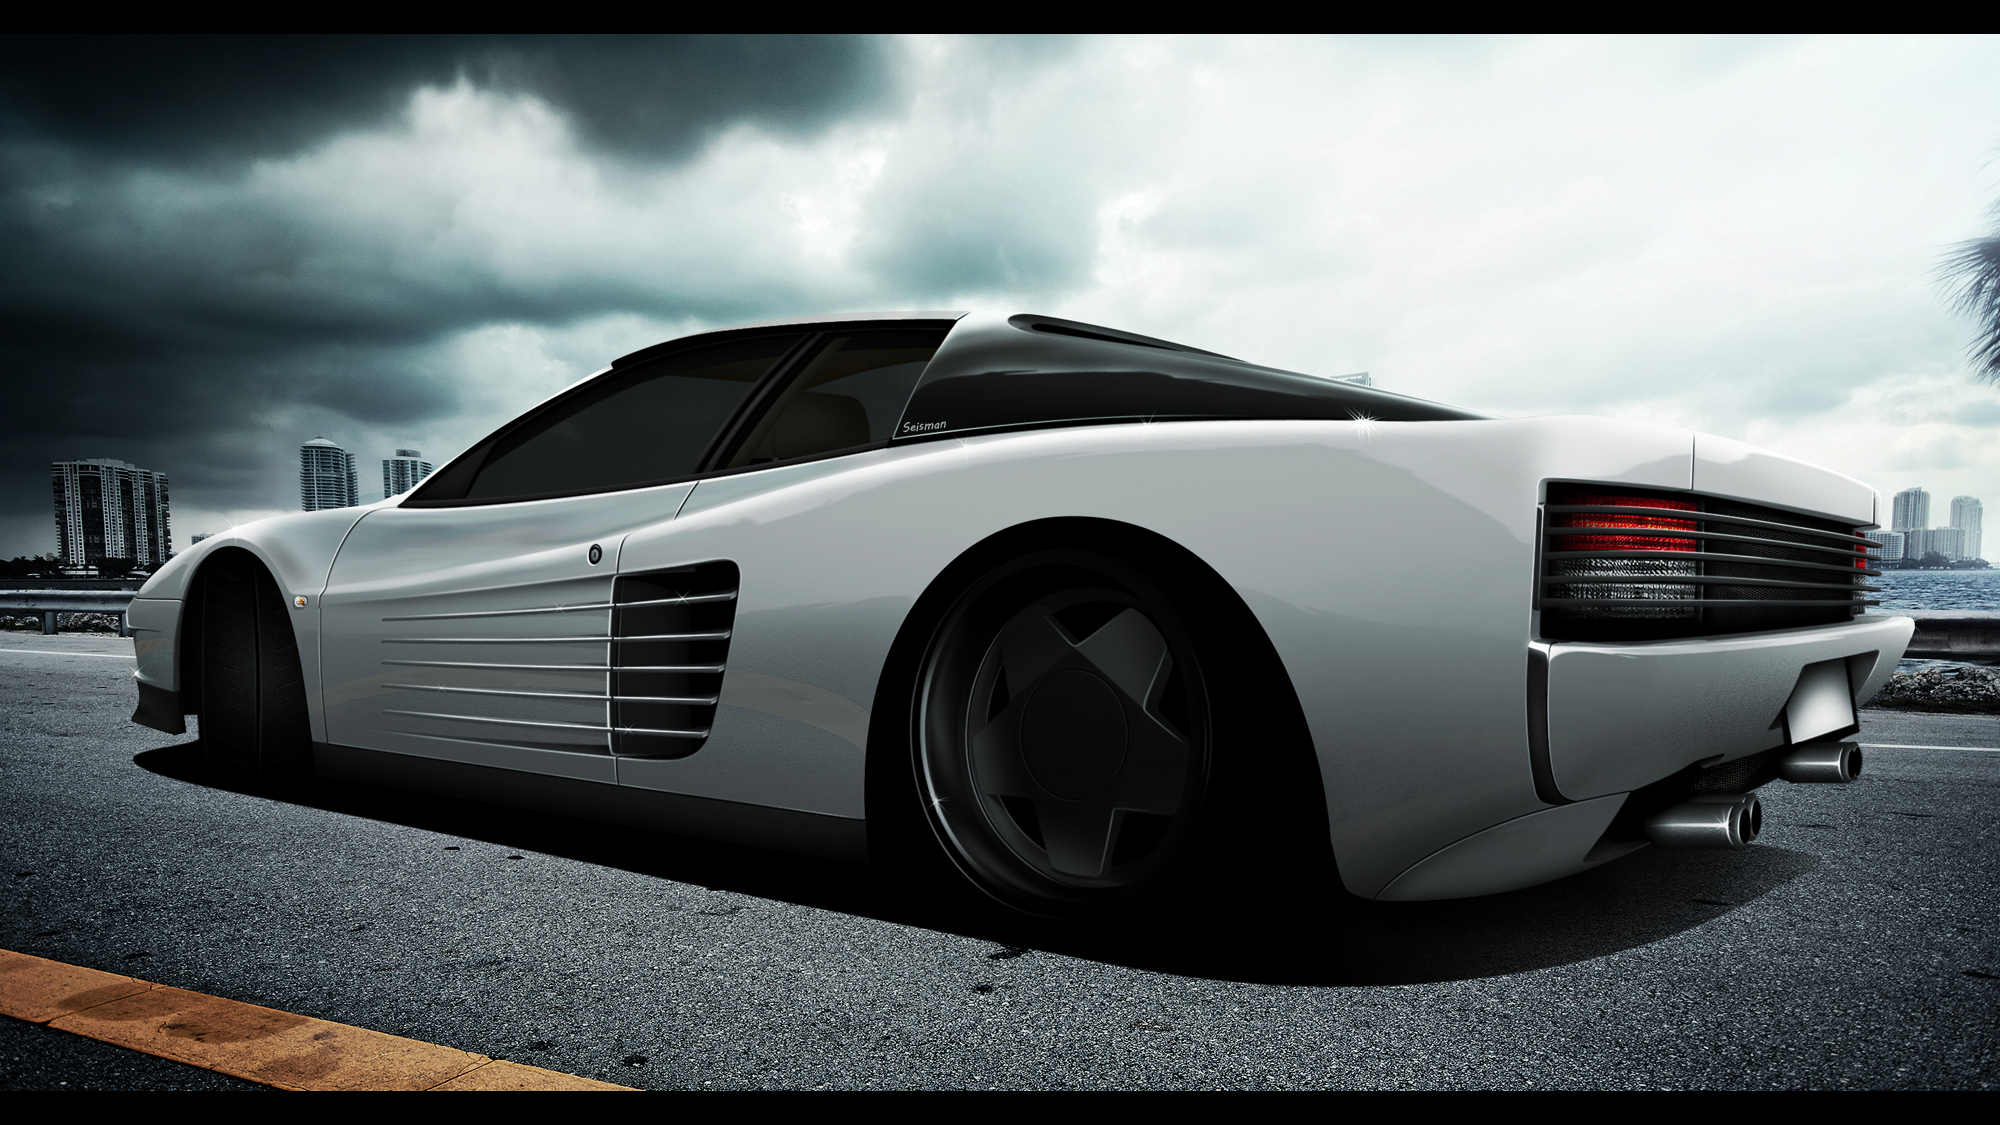 Ferrari Testarossa By Seisman On Deviantart